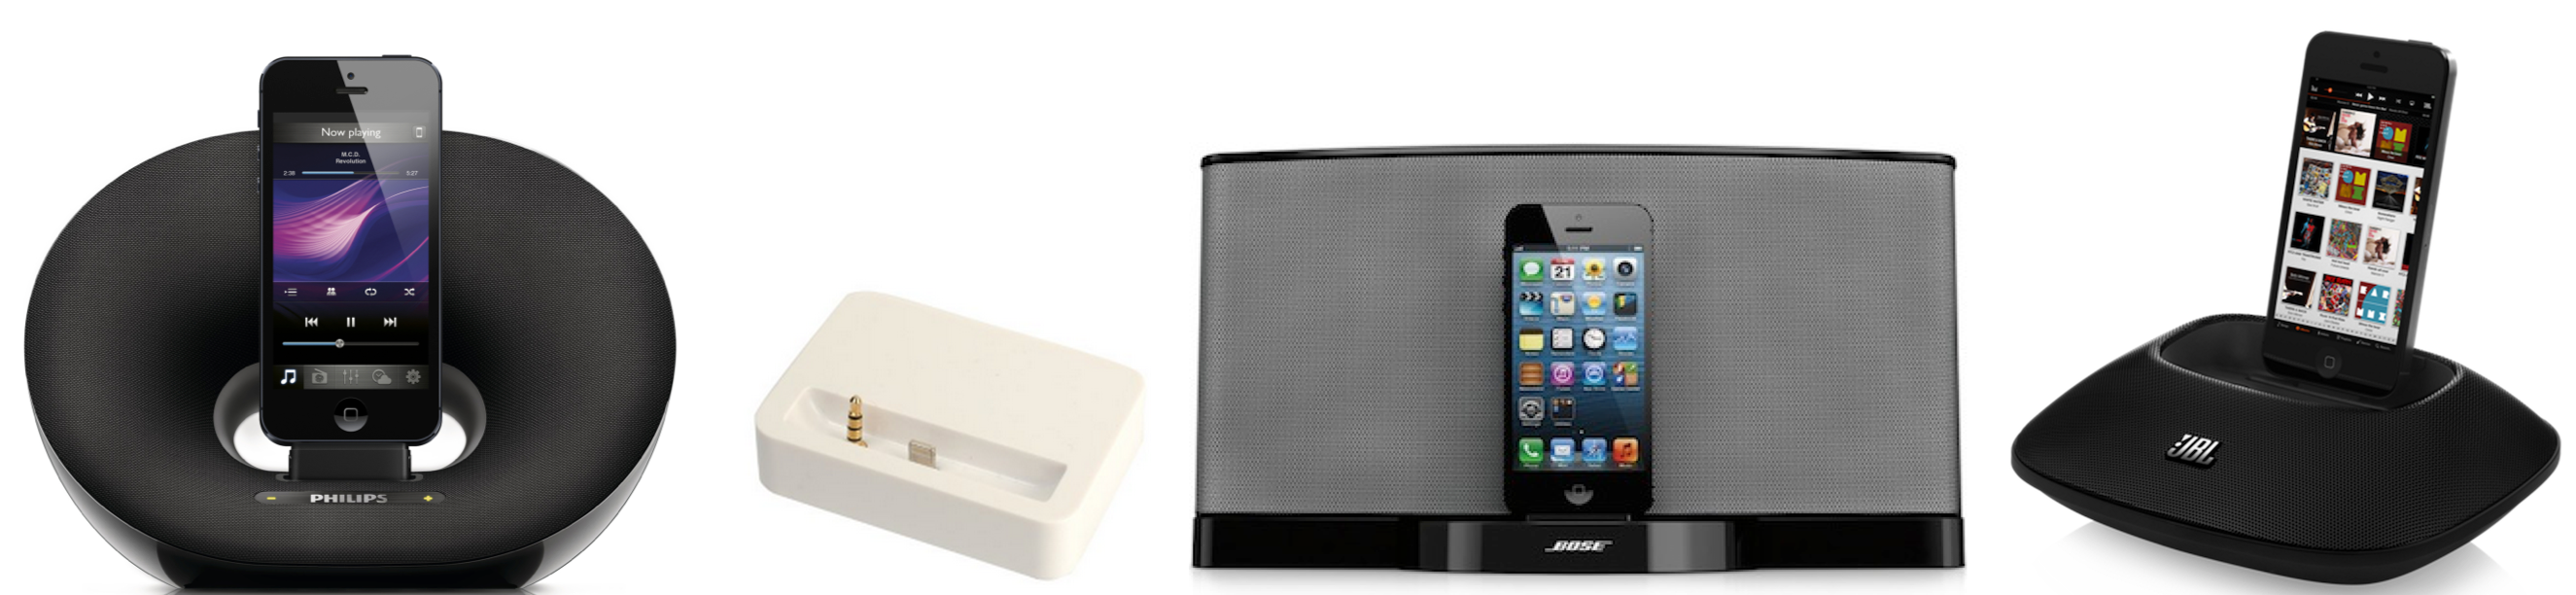 iPhone 5 Gift Guide Docks